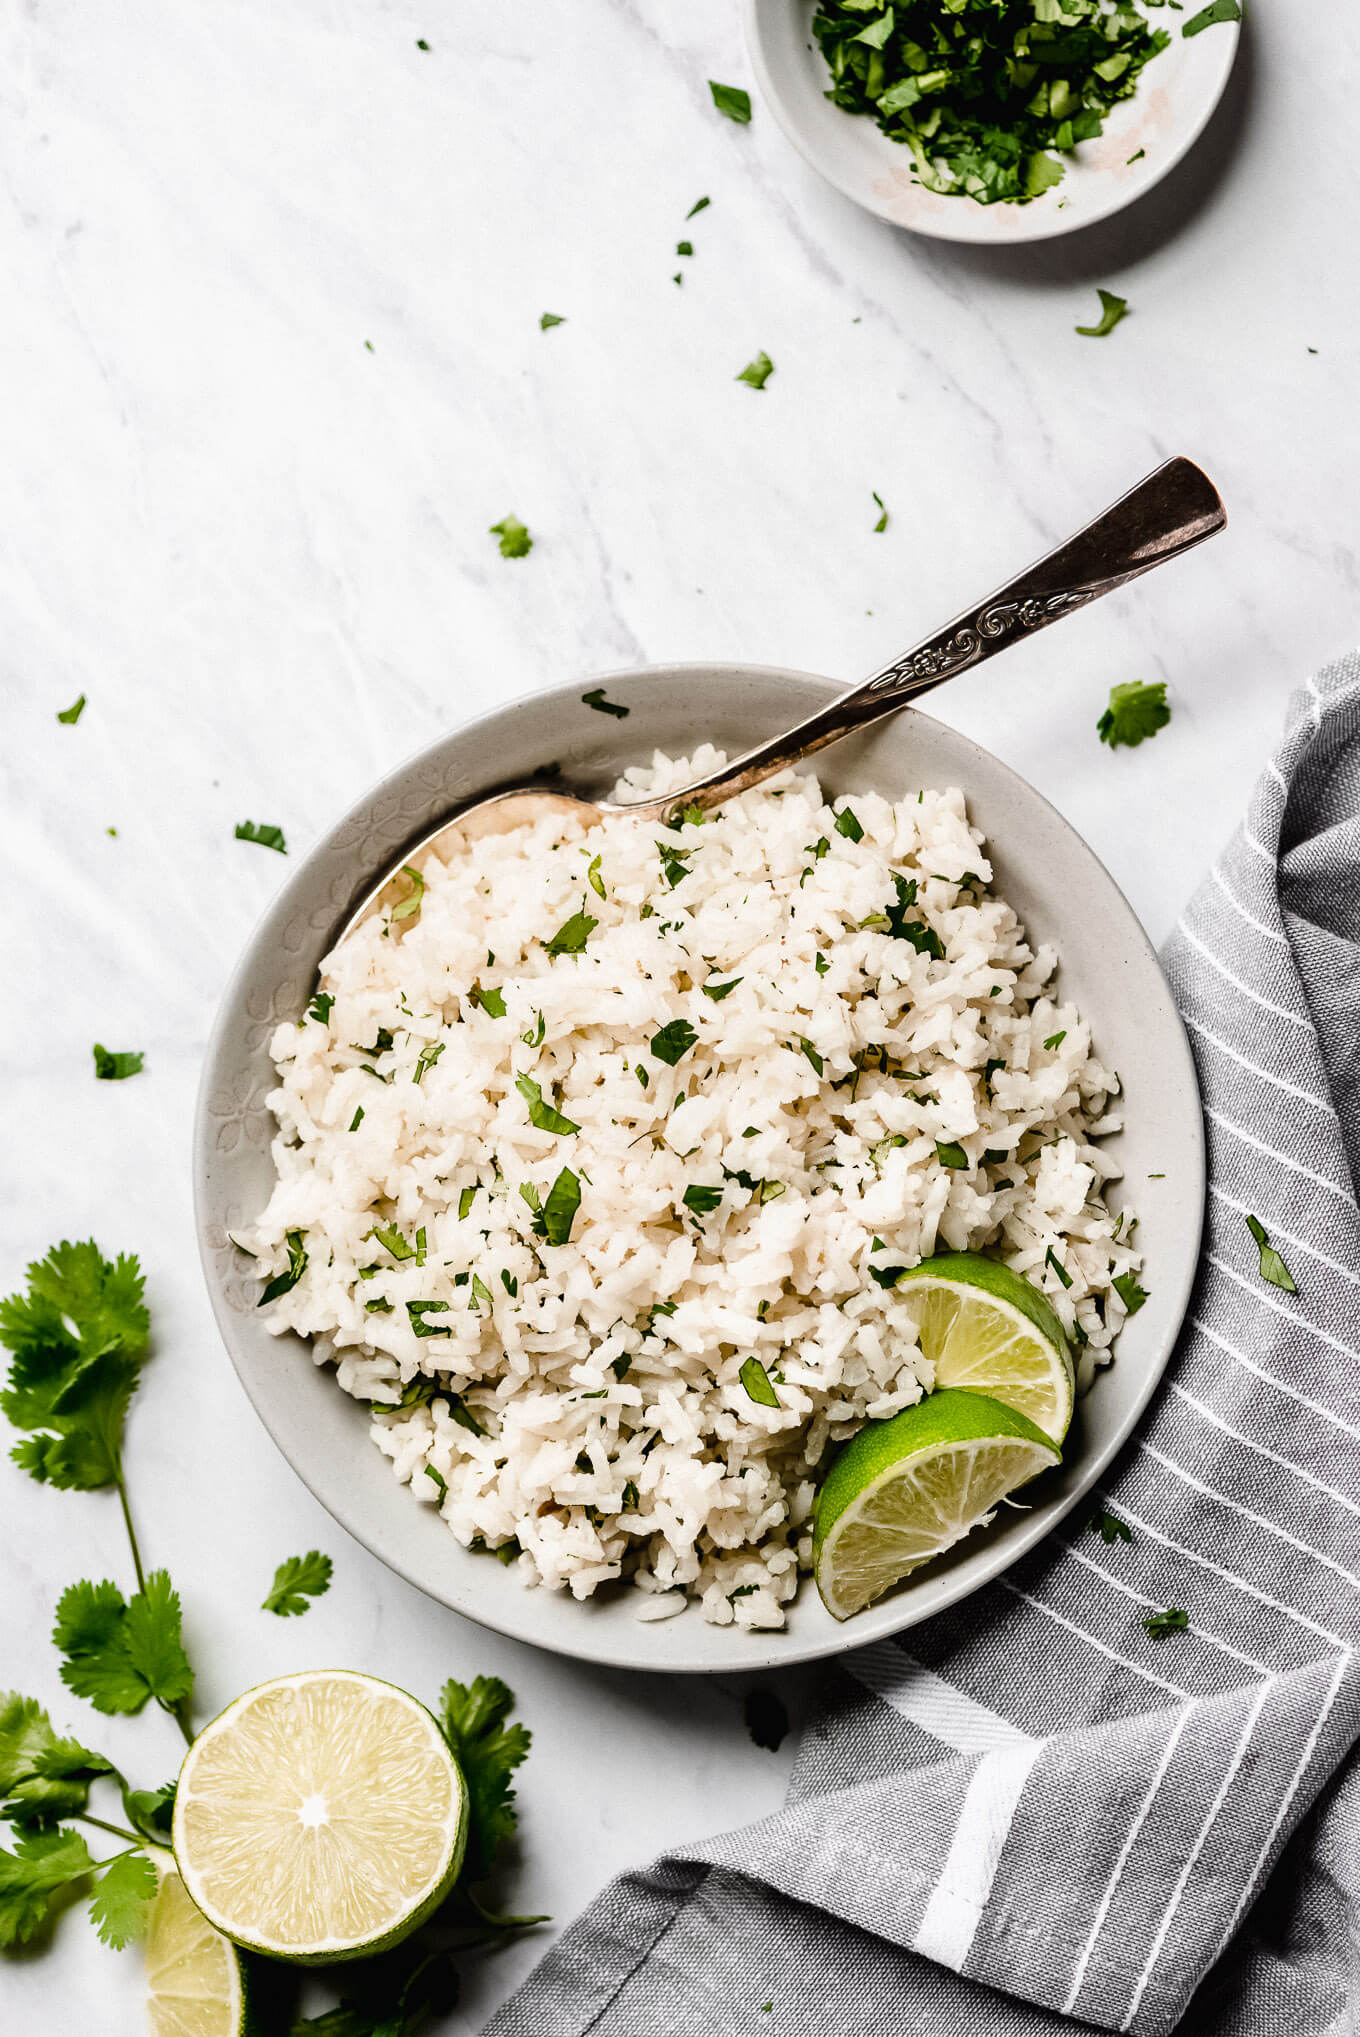 Top view of Cilantro Lime Rice in a serving bowl garnished with lime wedges and a bowl of chopped cilantro to the side.